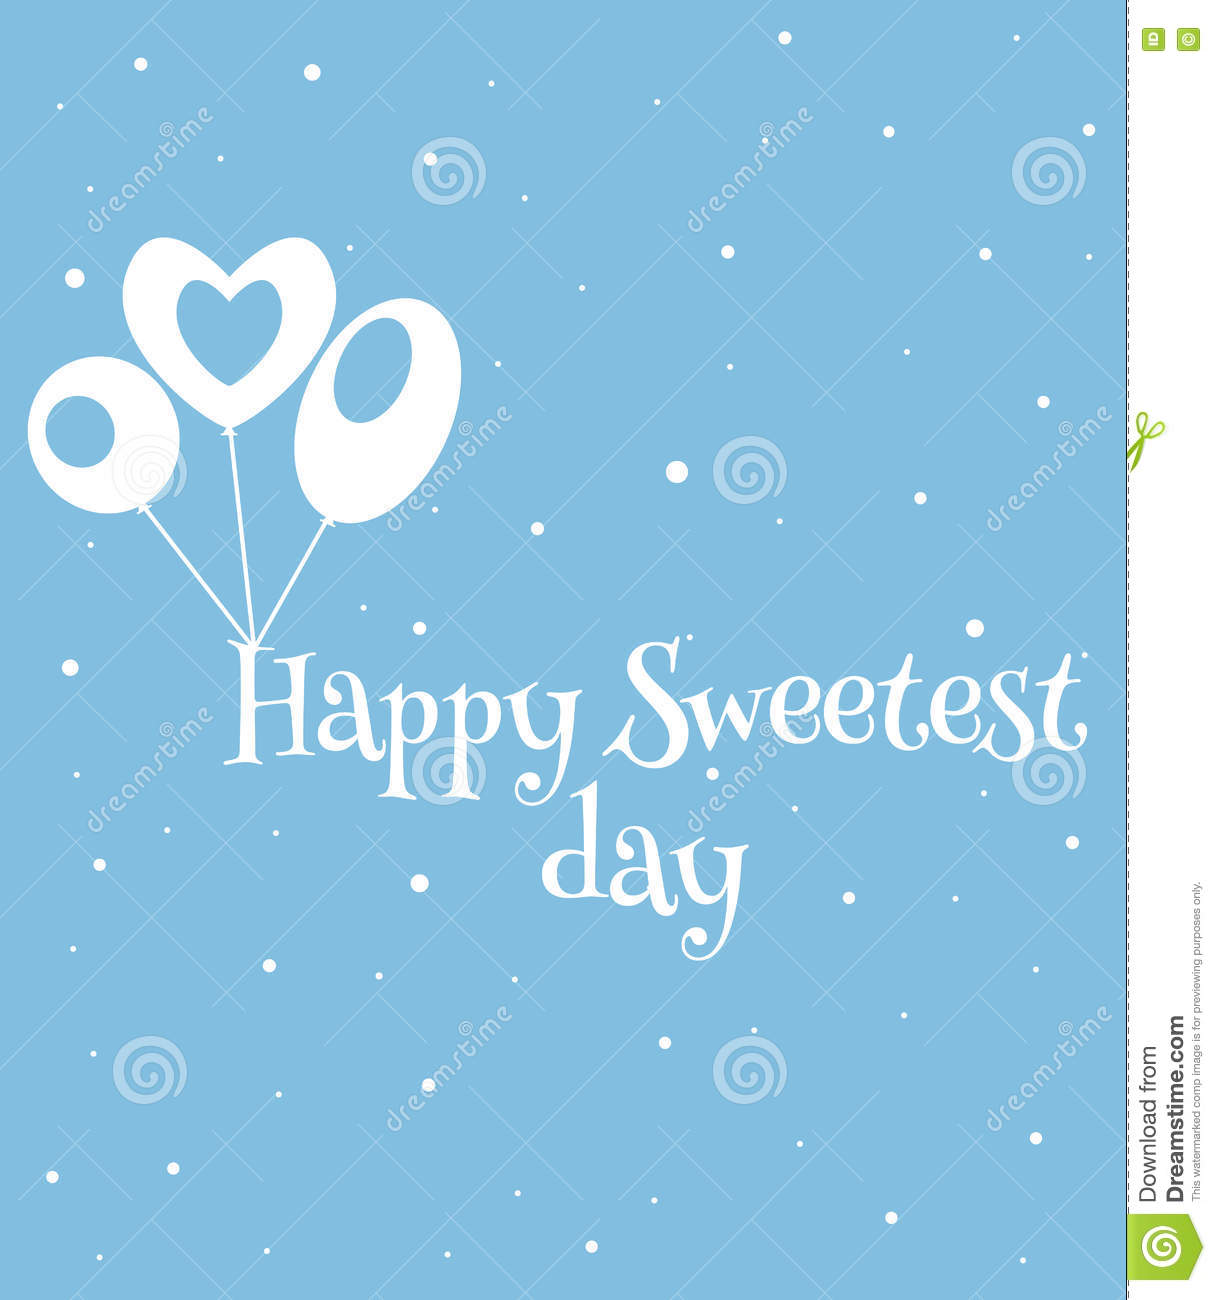 Happy sweetest day card stock vector illustration of flyer 78610726 happy sweetest day greetings card vector illustration m4hsunfo